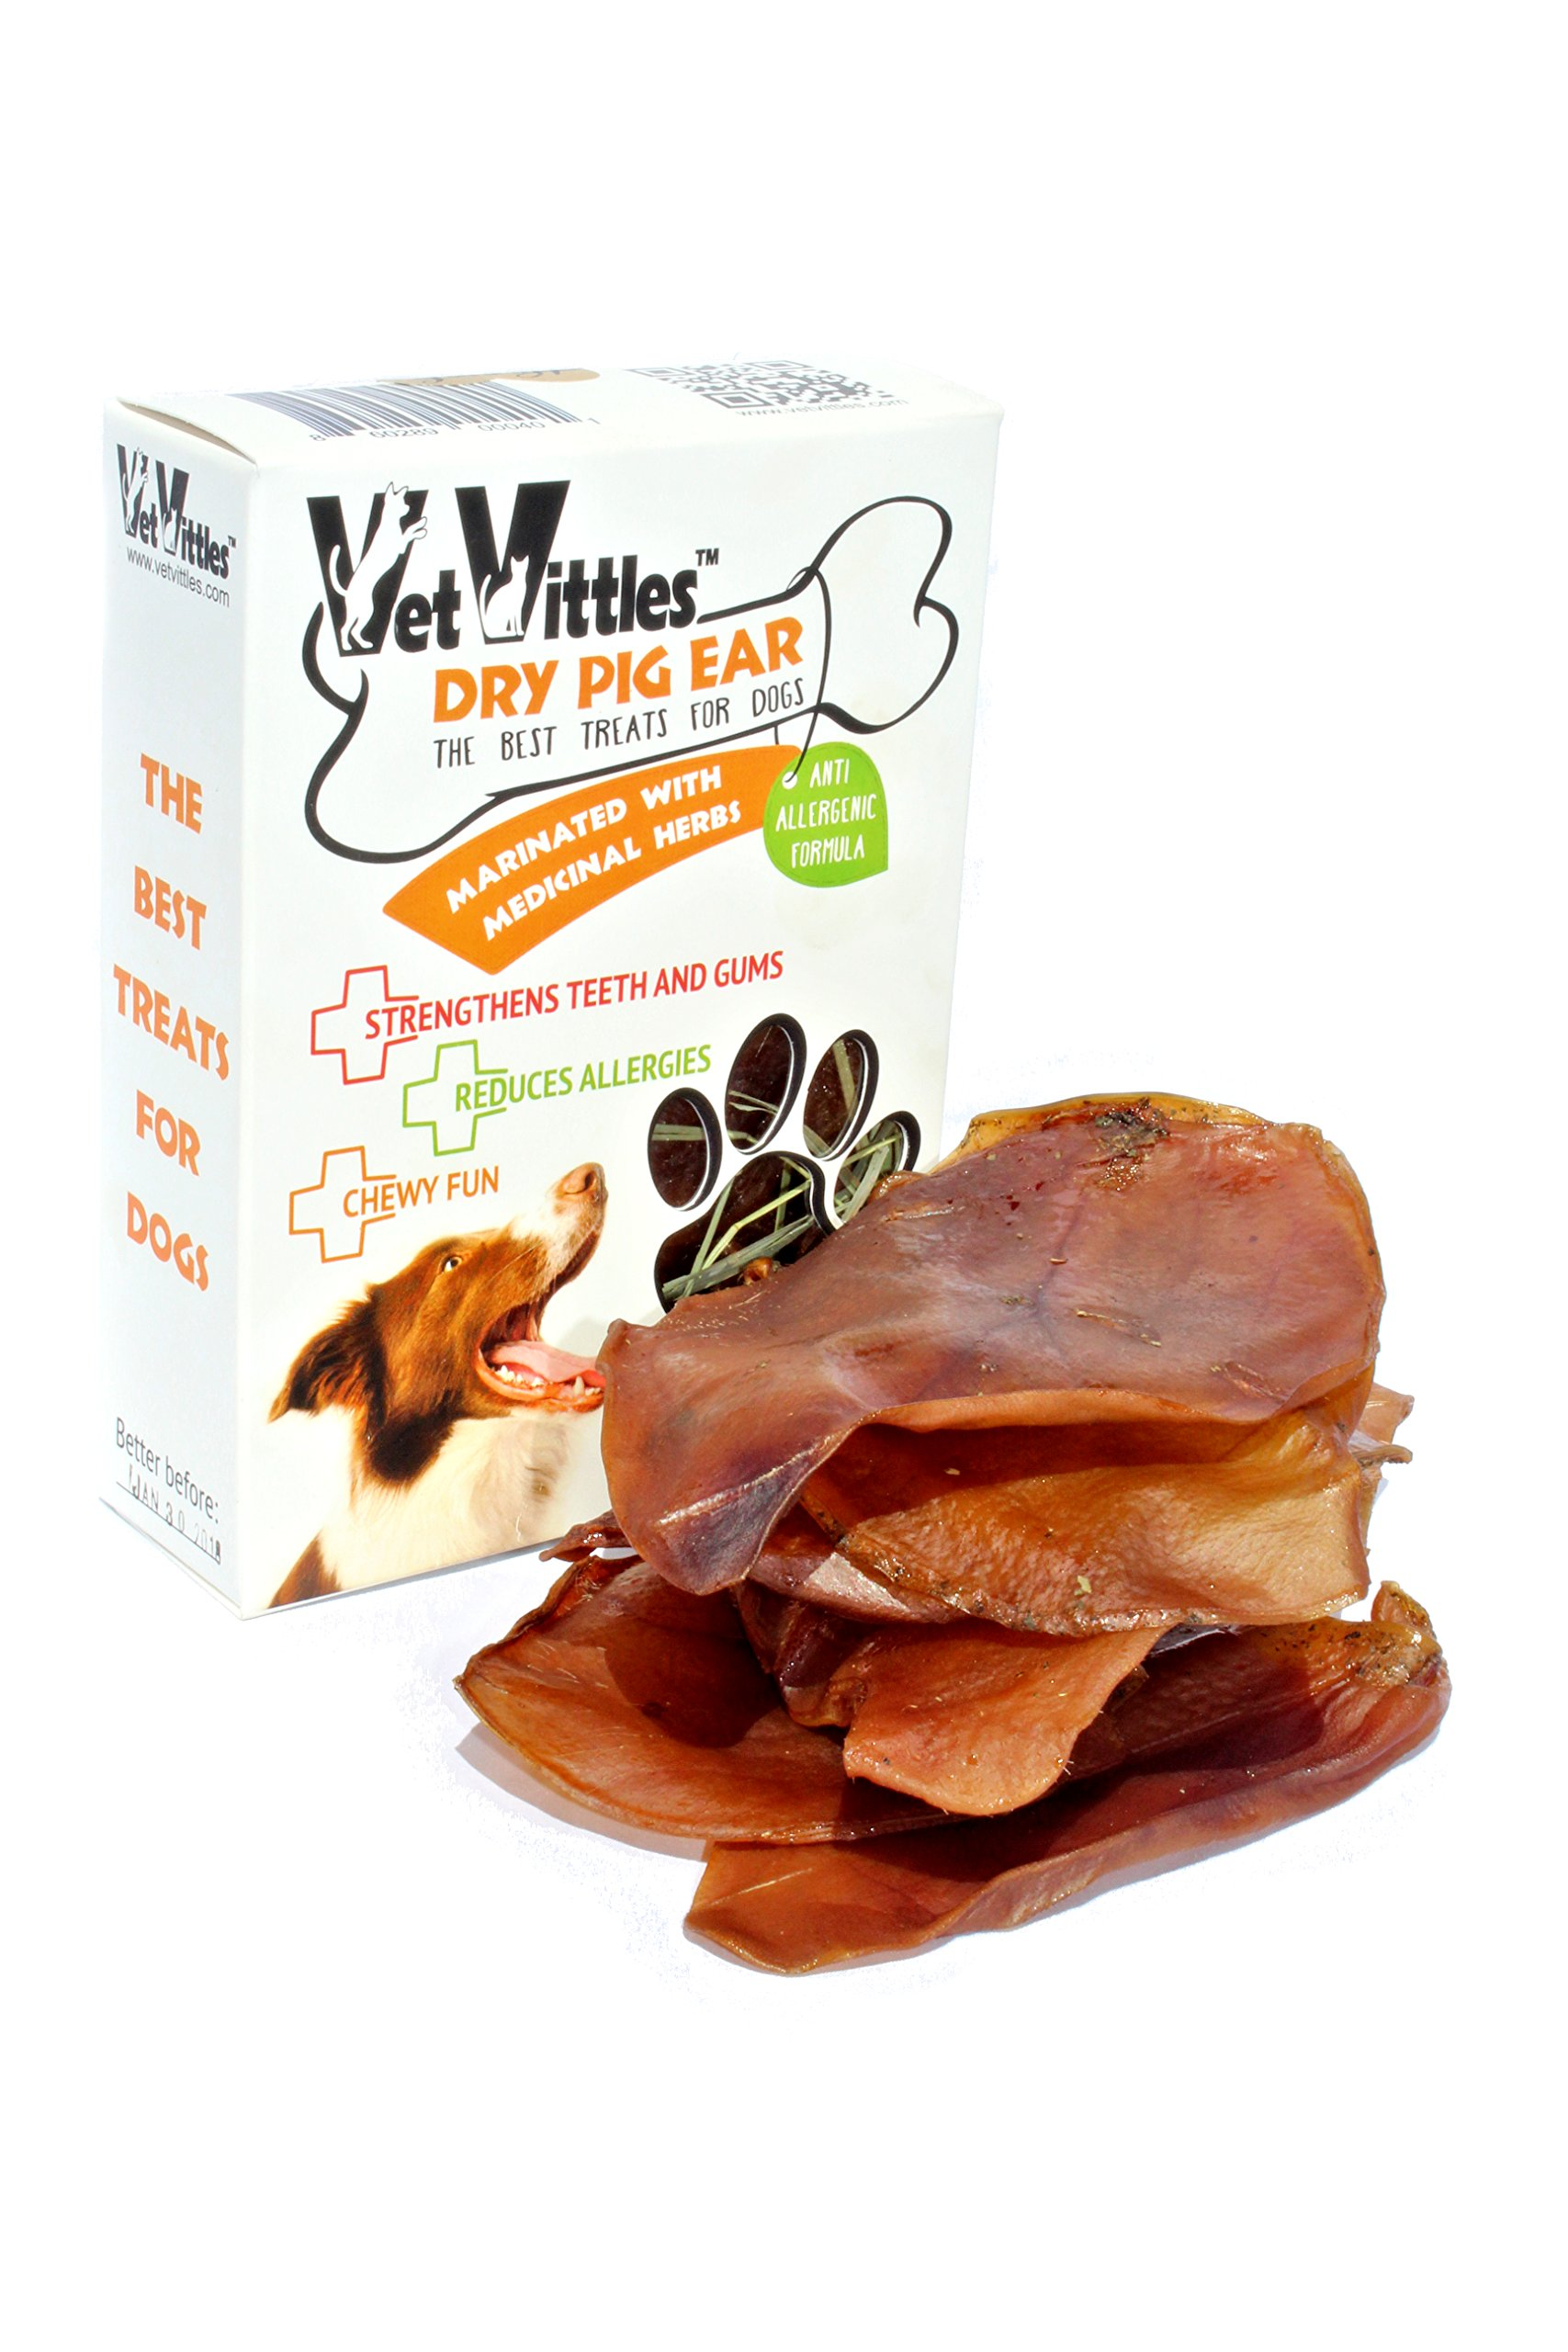 VetVittles 6 Piece Dry 100% Natural Pig Ear Treats for Dogs and Puppies, Herbal Supplement